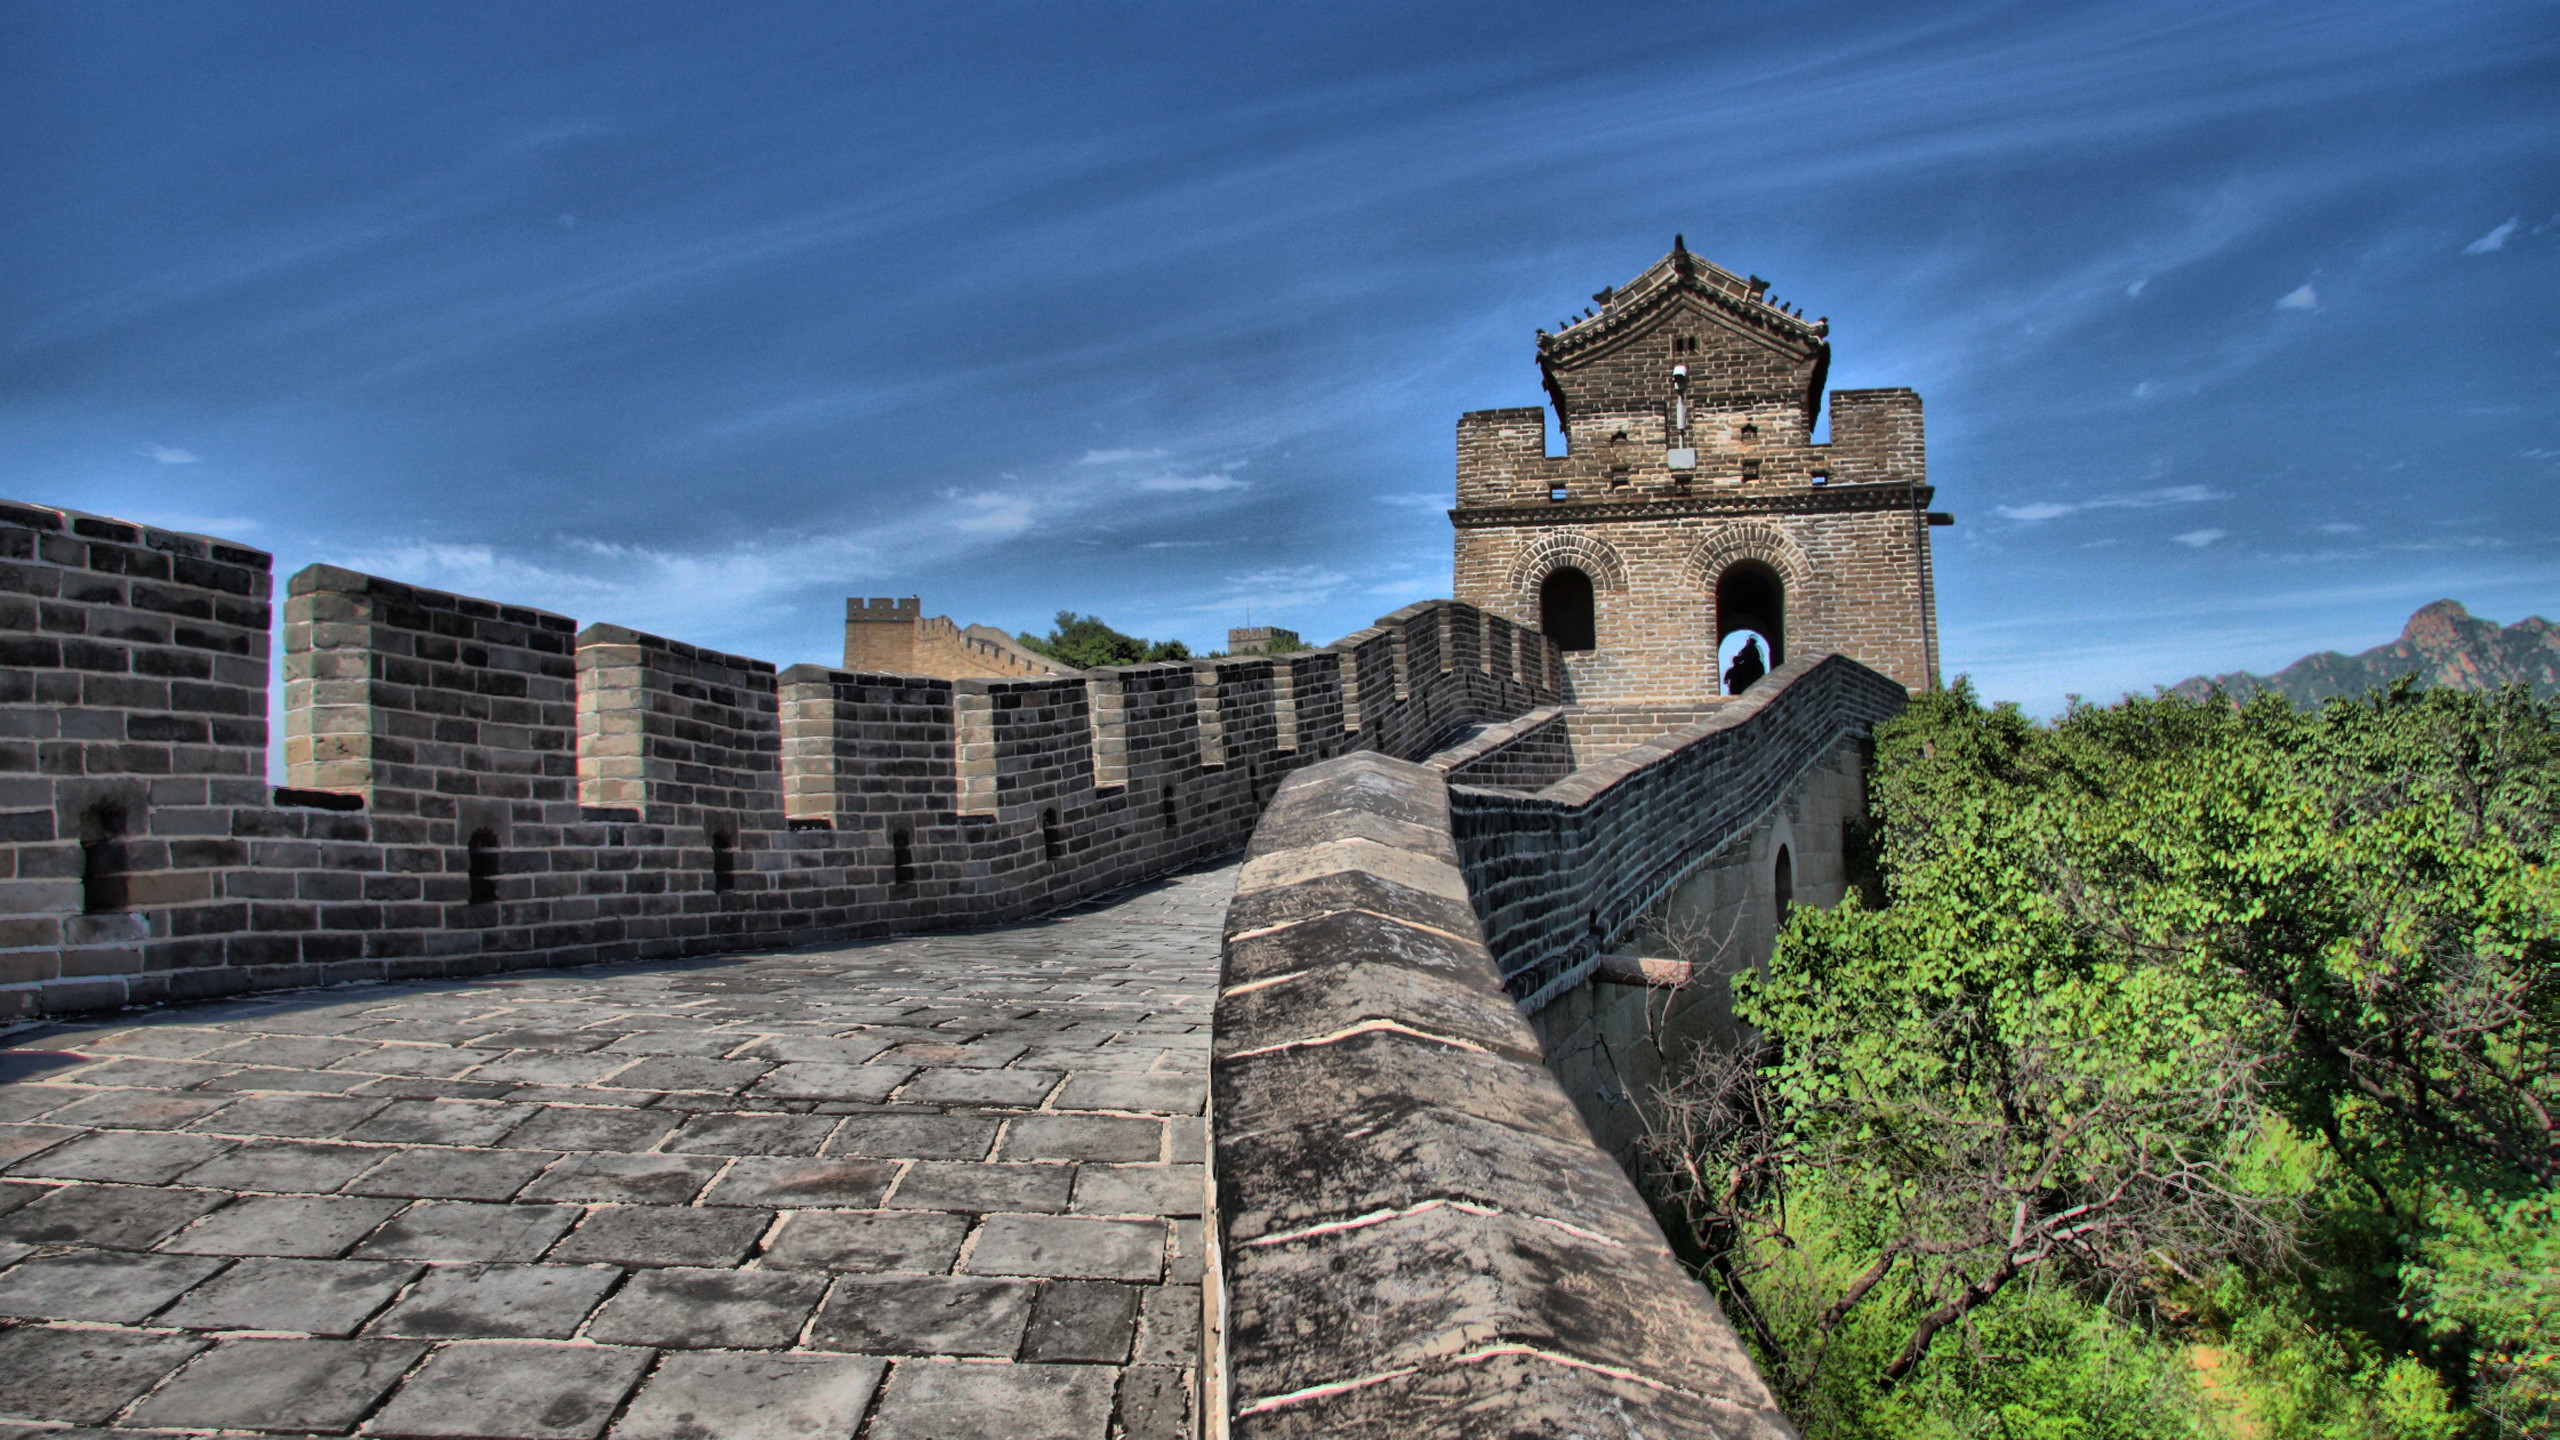 2560x1440 Great Wall Of China Wallpaper